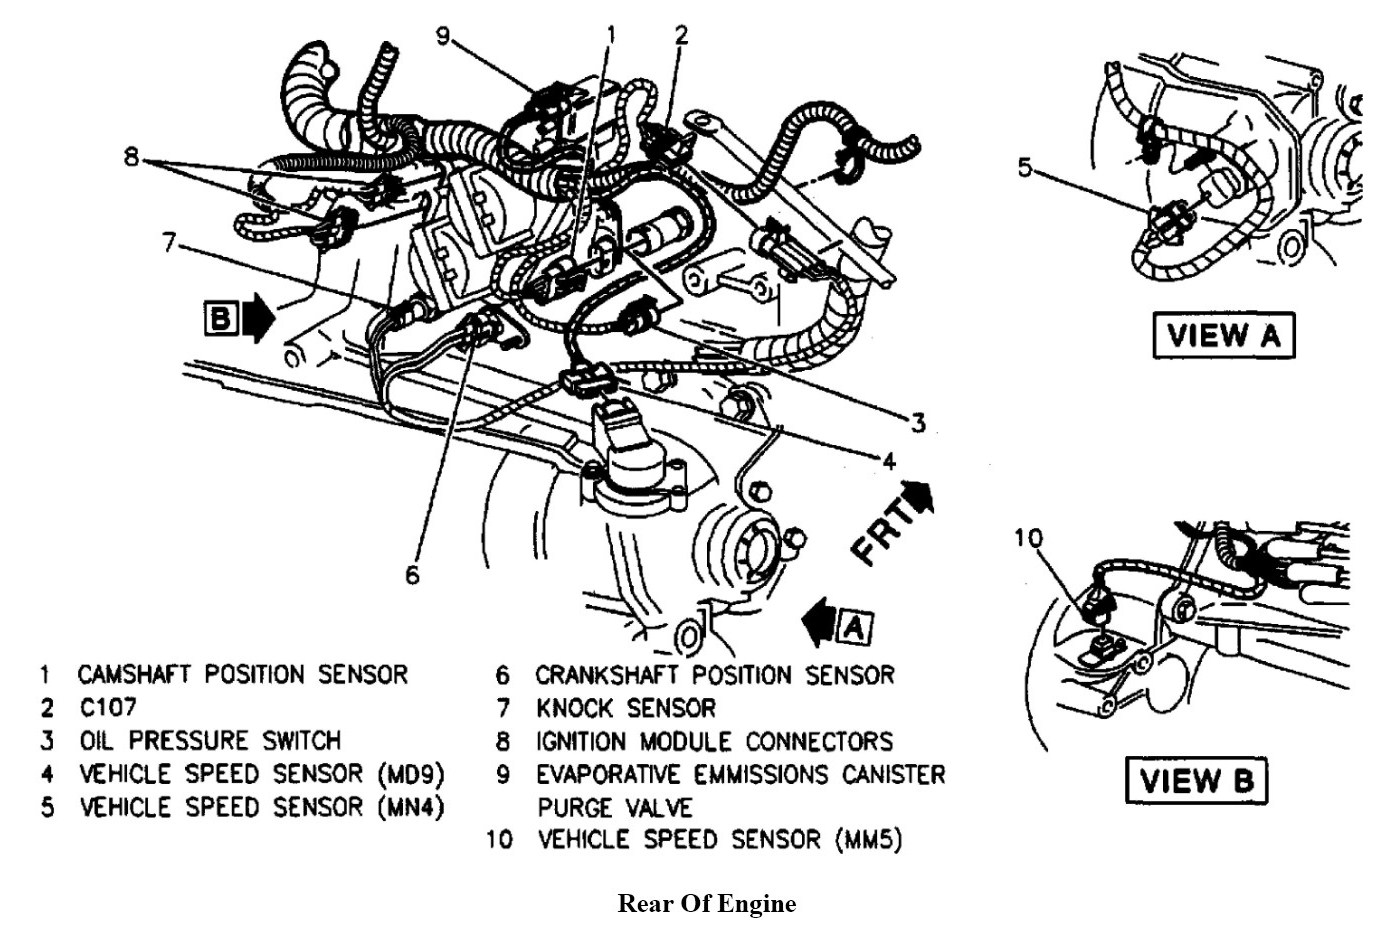 pontiac 2 2 engine diagram schematics gmc 2 2 engine schematics wiring diagram data  gmc 2 2 engine schematics wiring